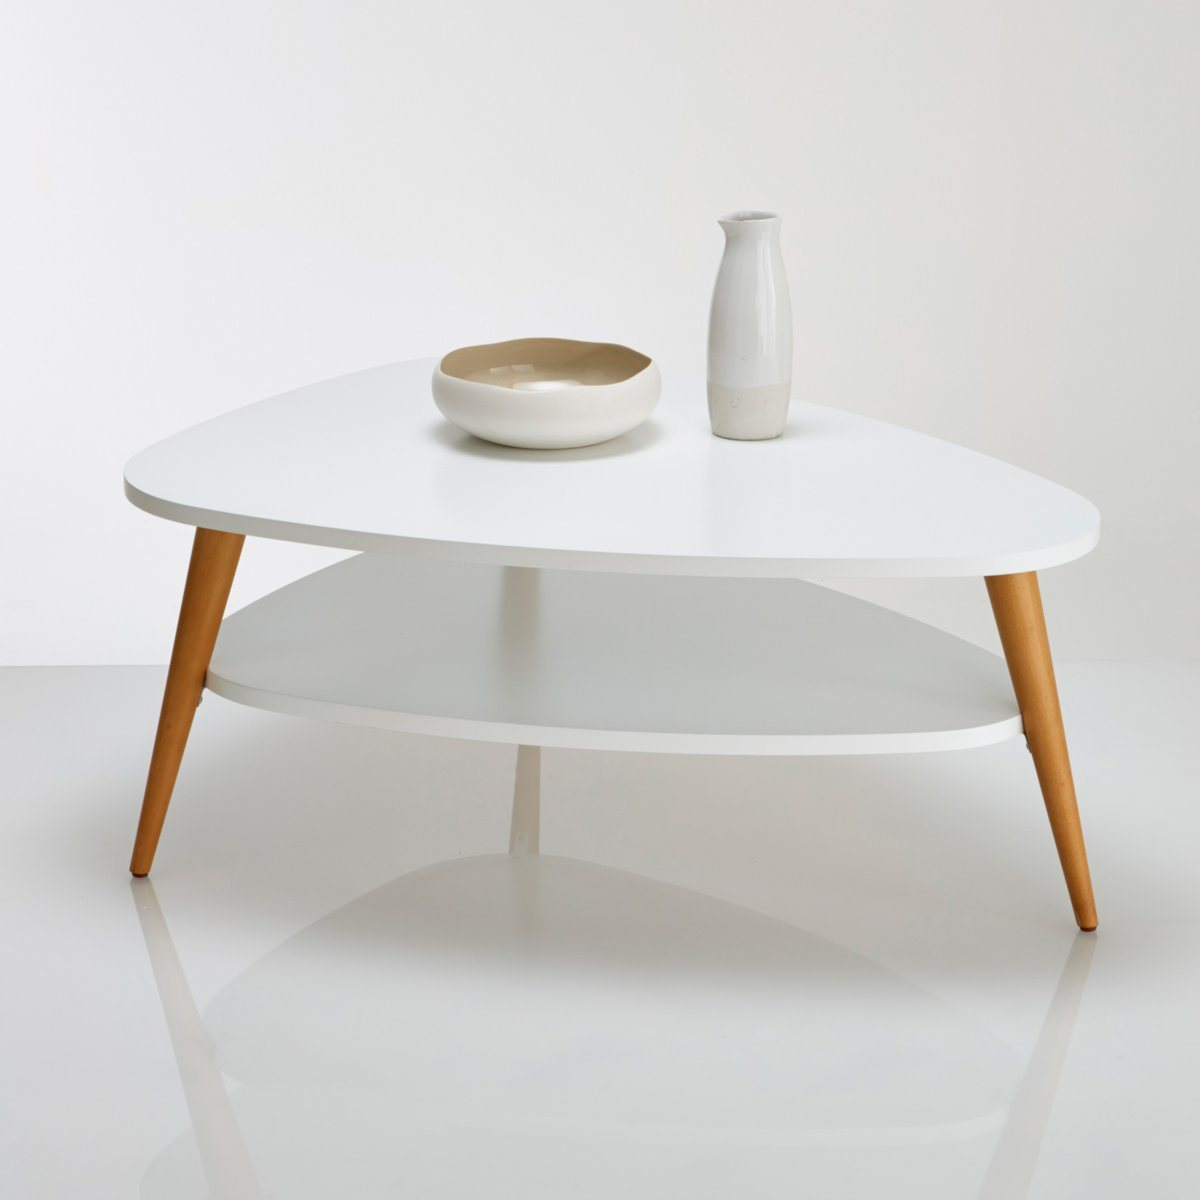 La table basse parfaite pour votre salon rise and shine - Table de salon ovale ...